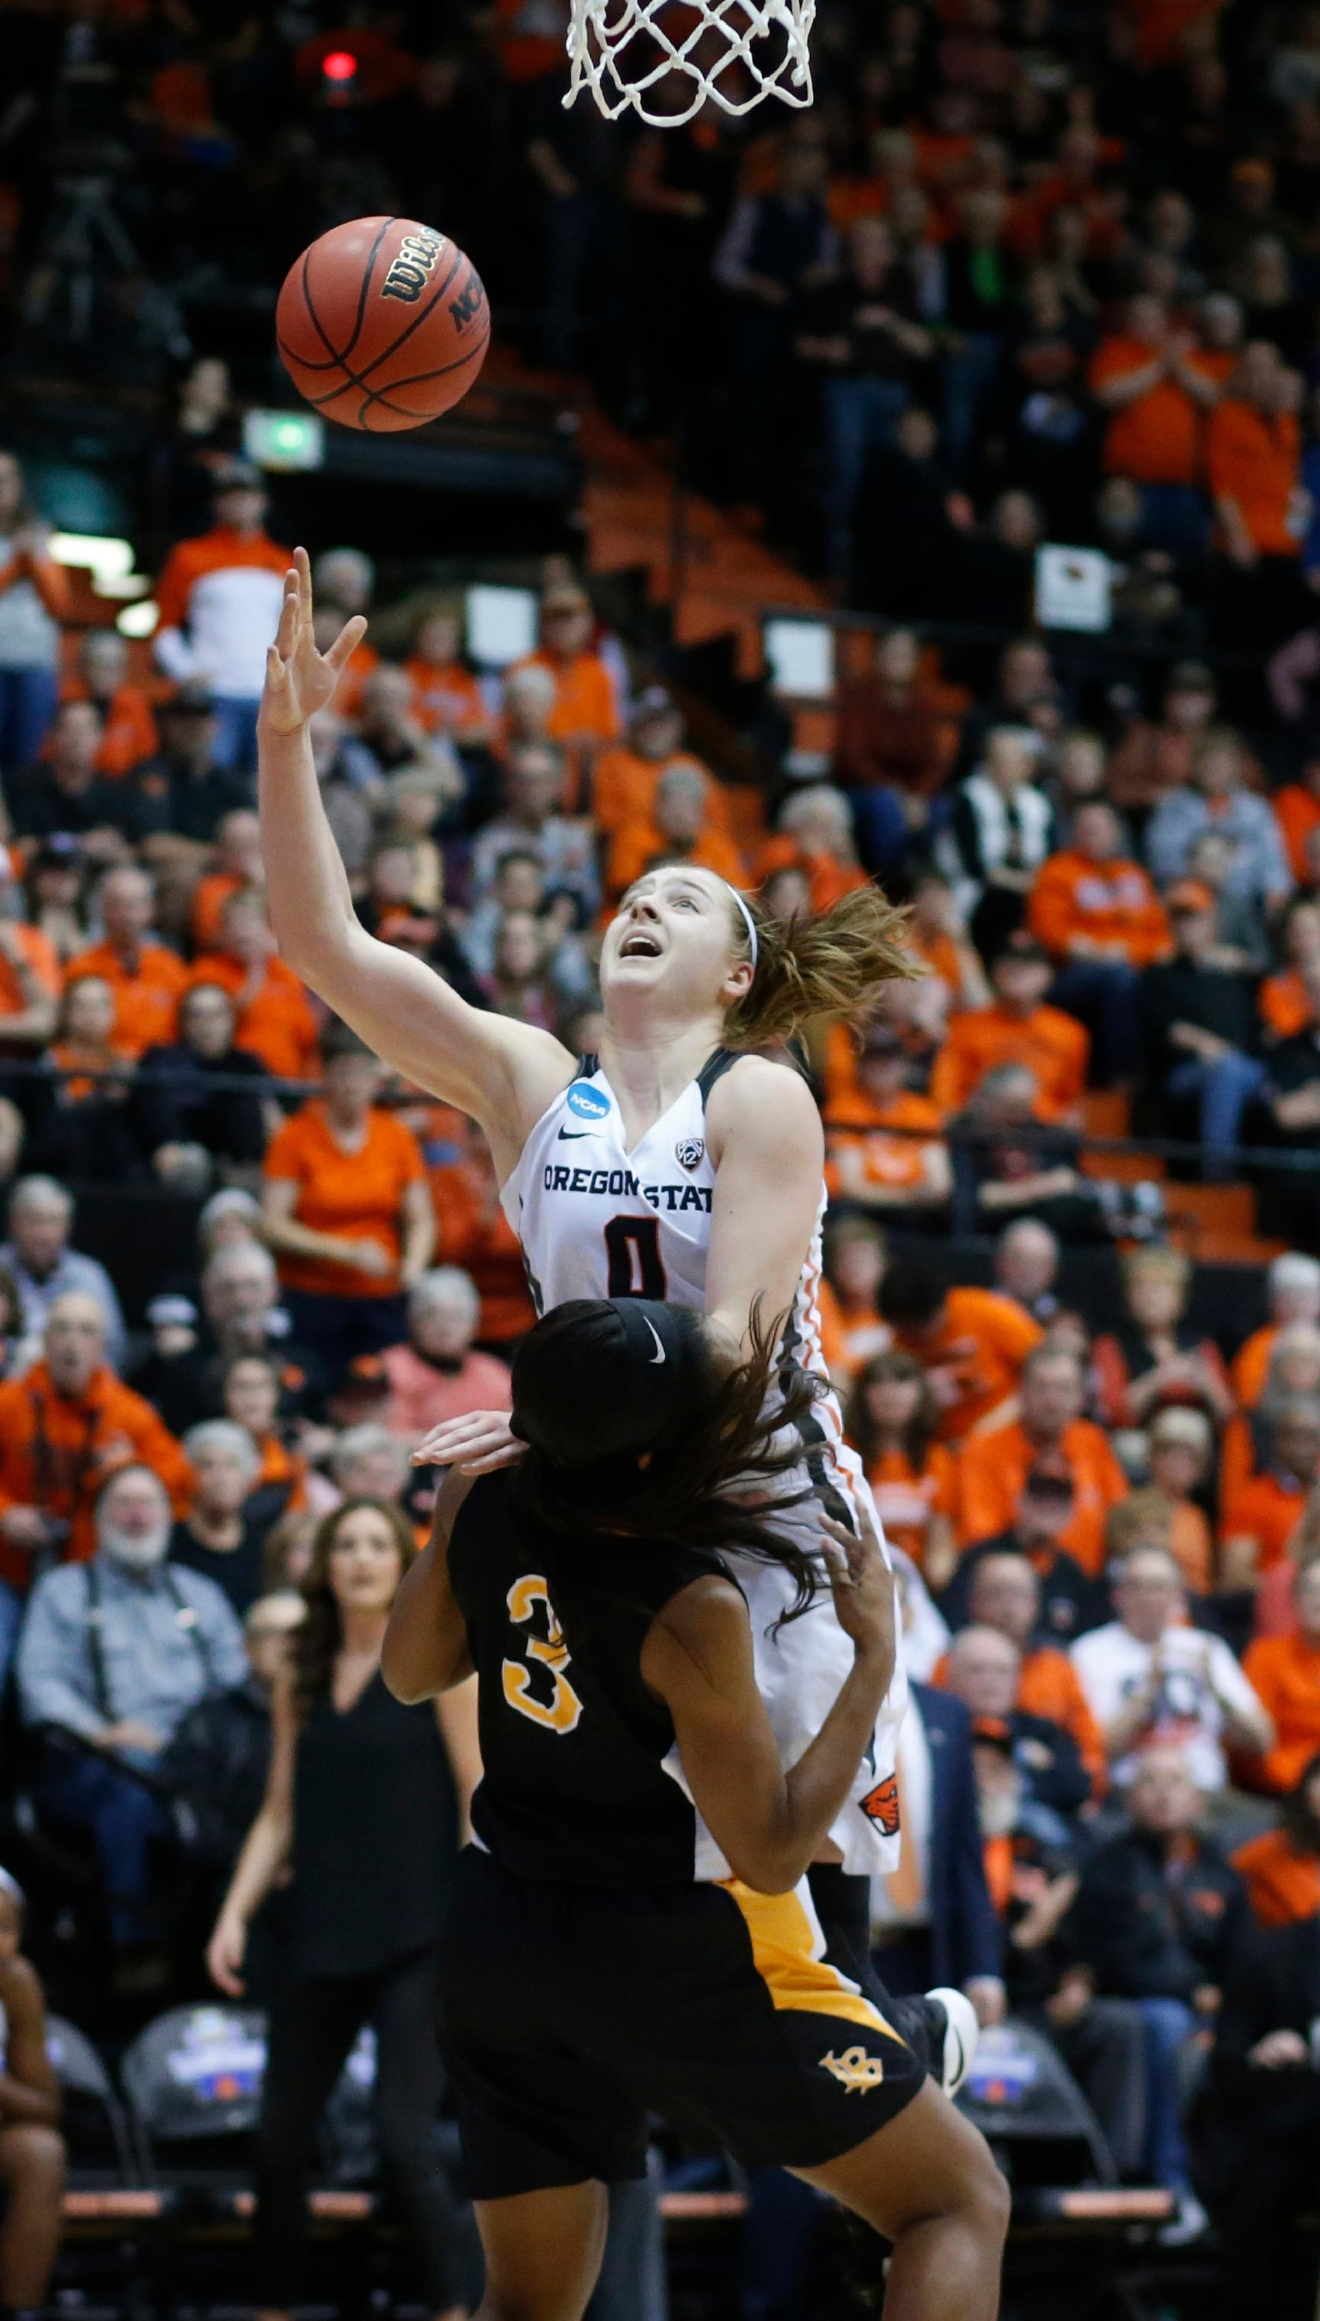 Oregon State's Mikayla Pivec (0) drives over Long Beach State's Chanterria Jackson (3) for a basket during the second half of a first-round game in the women's NCAA college basketball tournament Friday, March 17, 2017, in Corvallis, Ore. (AP Photo/ Timothy J. Gonzalez)